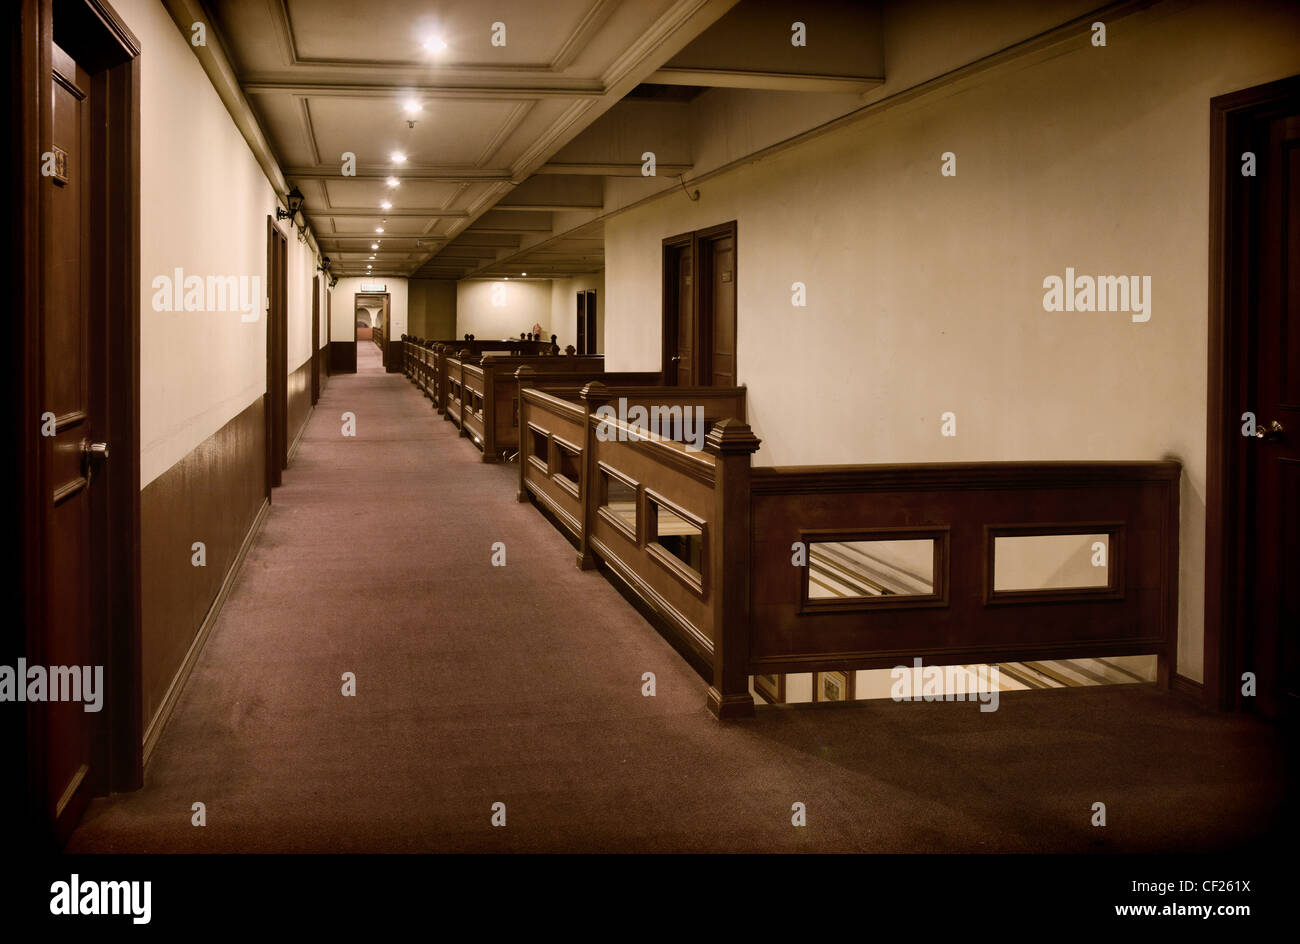 hallway with rooms inside a rough old hotel - Stock Image